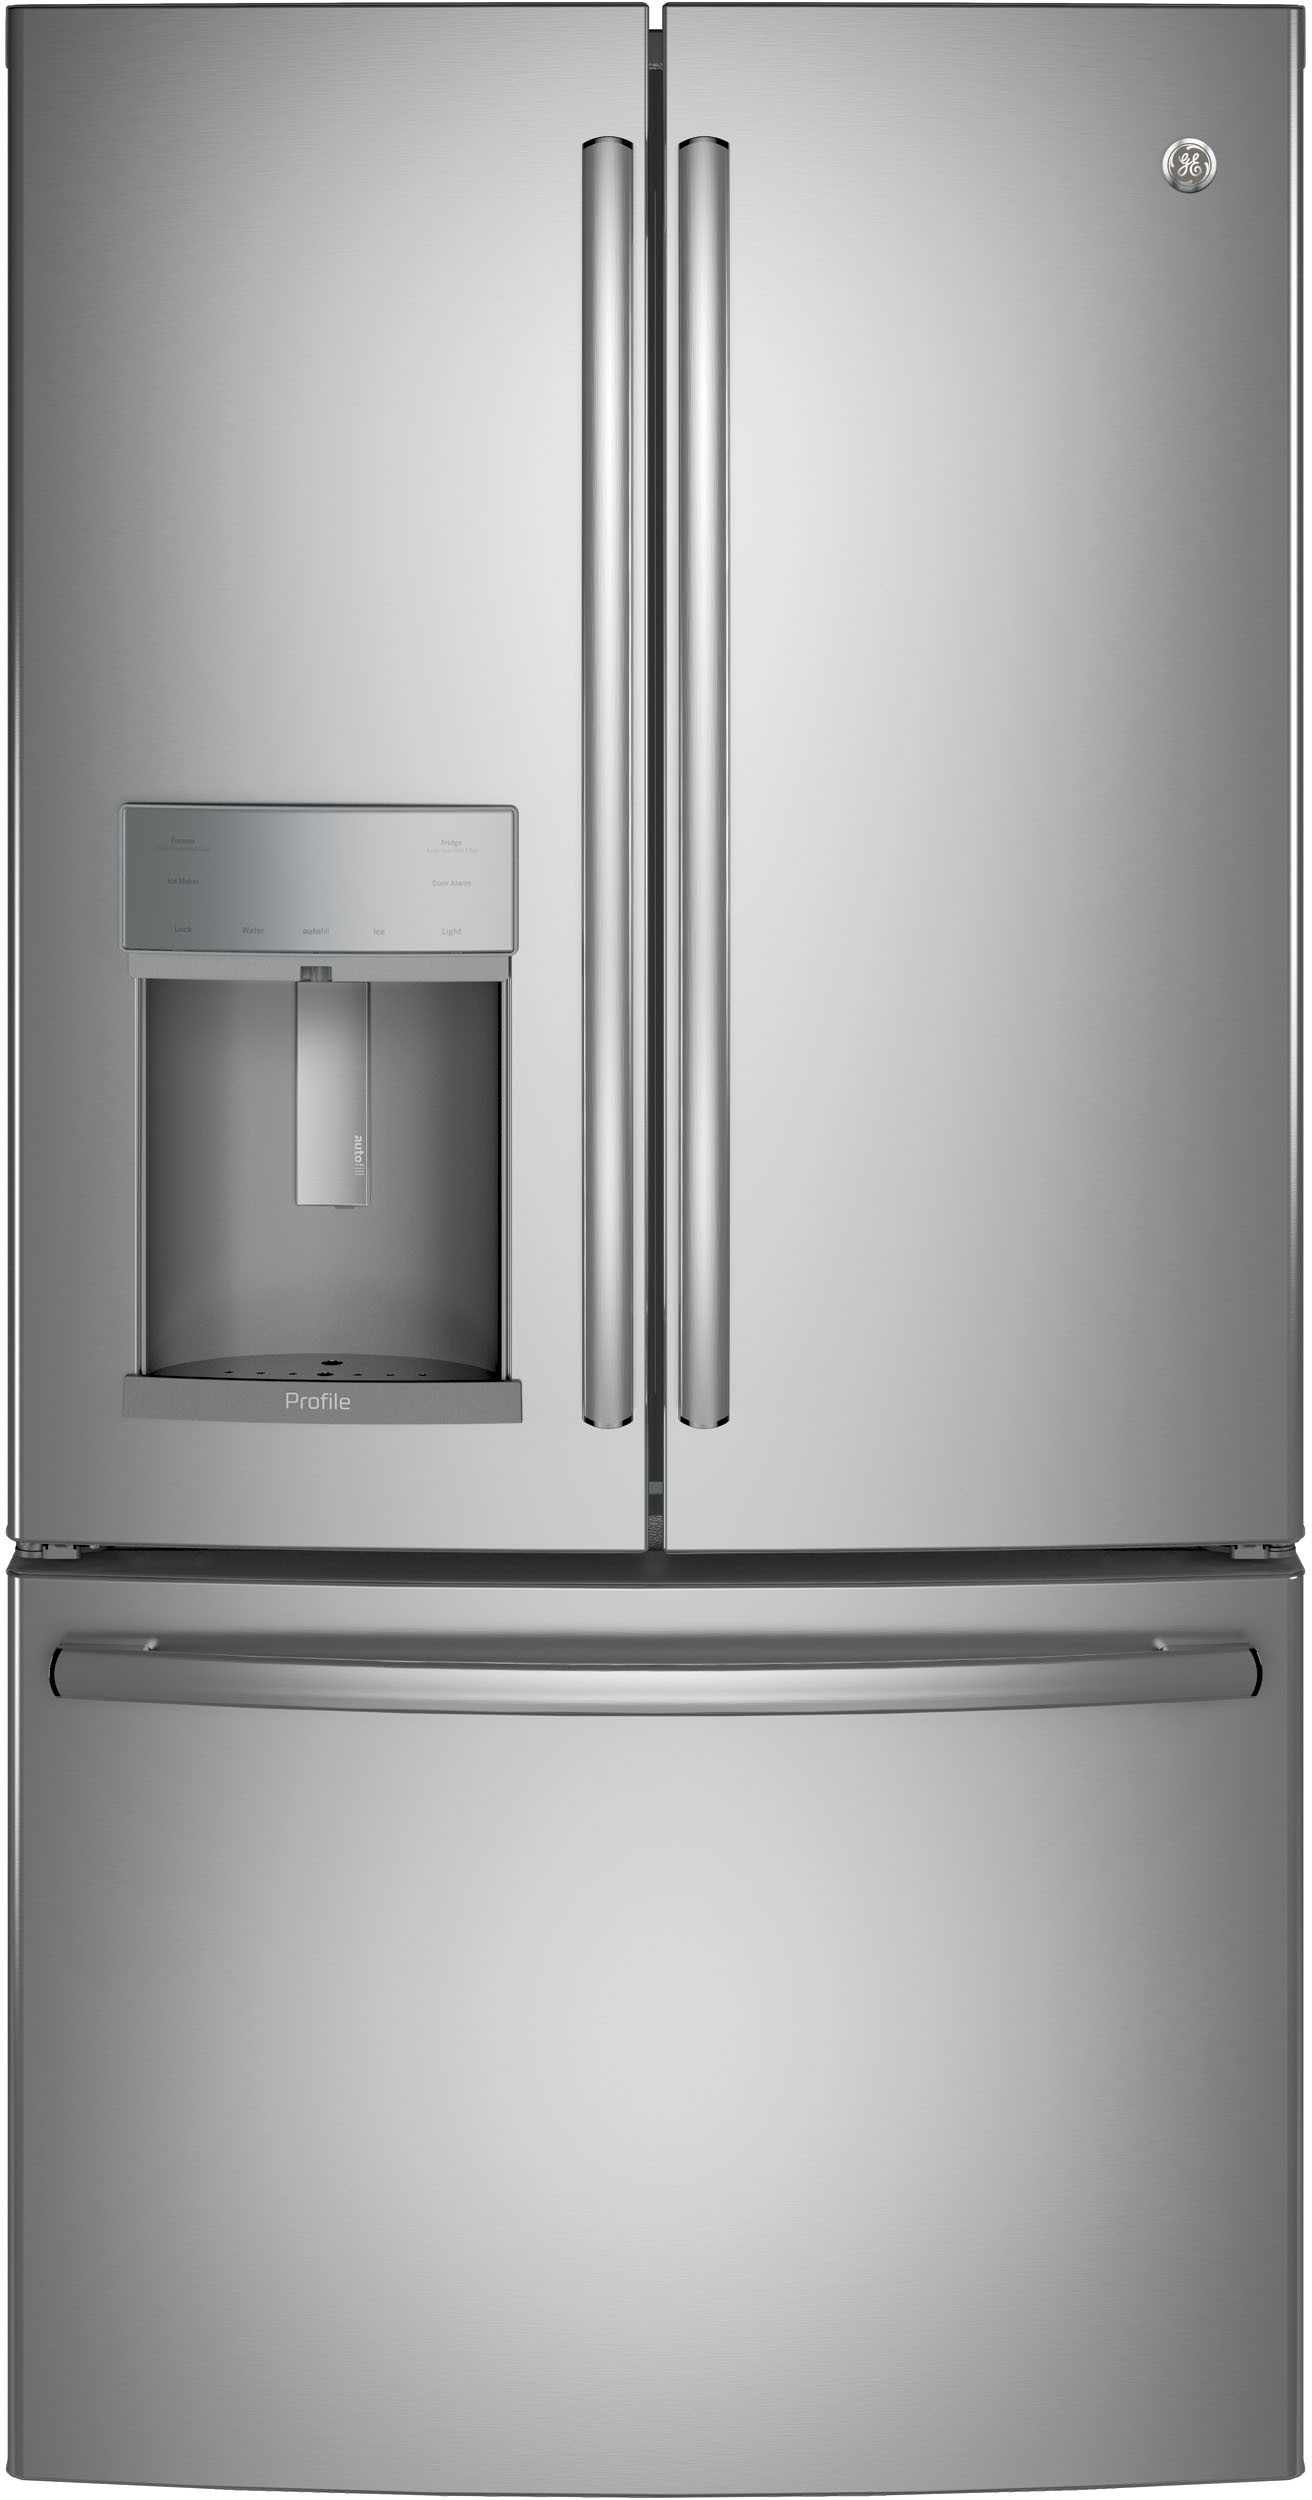 Ge 30 inch side by side white refrigerator - Ge 30 Inch Side By Side White Refrigerator 18